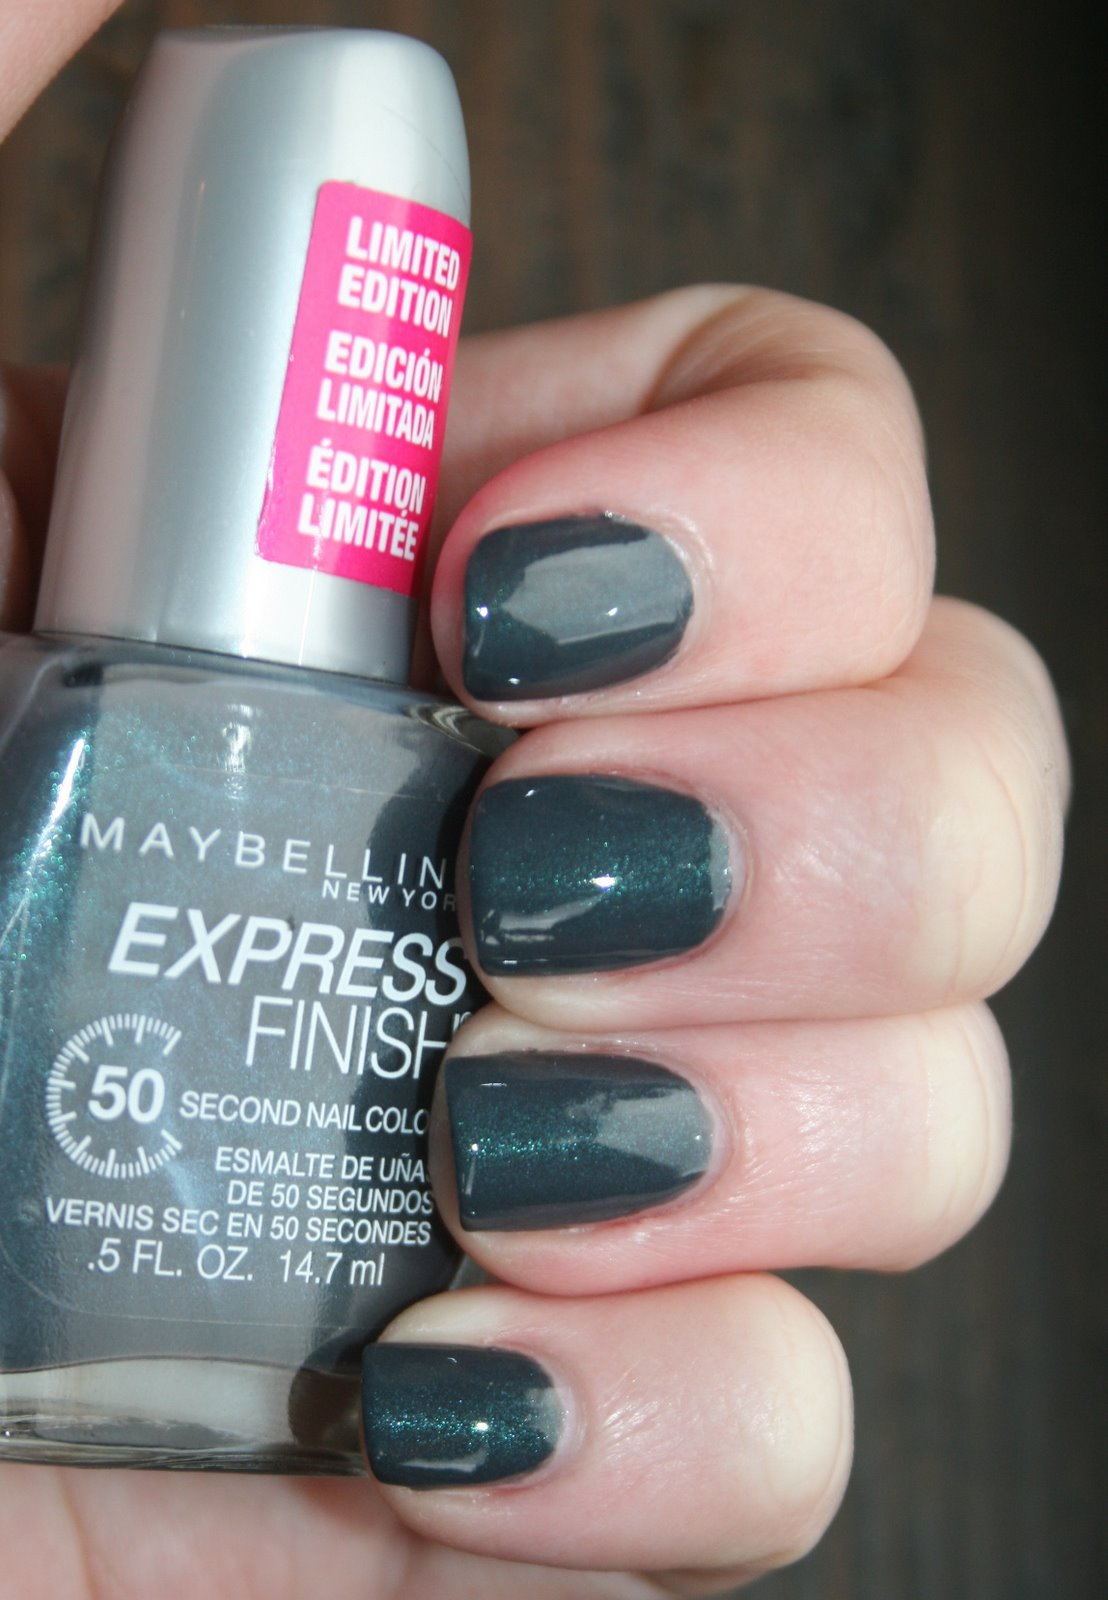 Maybelline Cool Couture swatch